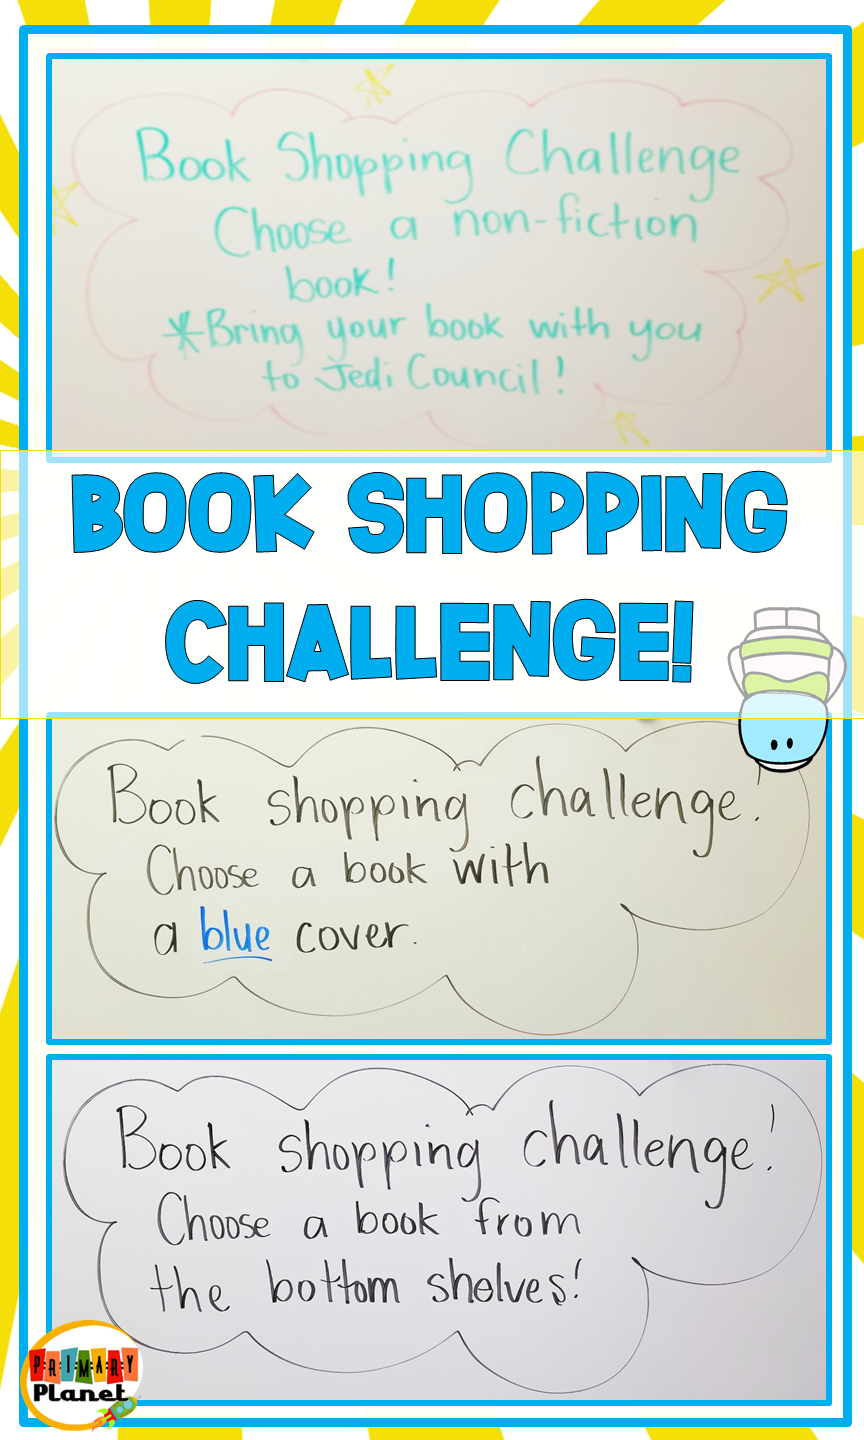 Book Shopping Challenges, just one of the 8 Morning Works Ideas (Part 1)  for 1st, 2nd, or 3rd grade that don't involve worksheets! You will also find fun morning work (bell ringer) ideas for morning work tubs, free activities, and even some paperless bell ringer choices!  Most ideas are little to no prep! Morning Work ideas for Reading, Writing, Math, Book Shopping, and Computers!  Don't forget to save and grab your freebies!  #morningwork #teachers #primaryplanet